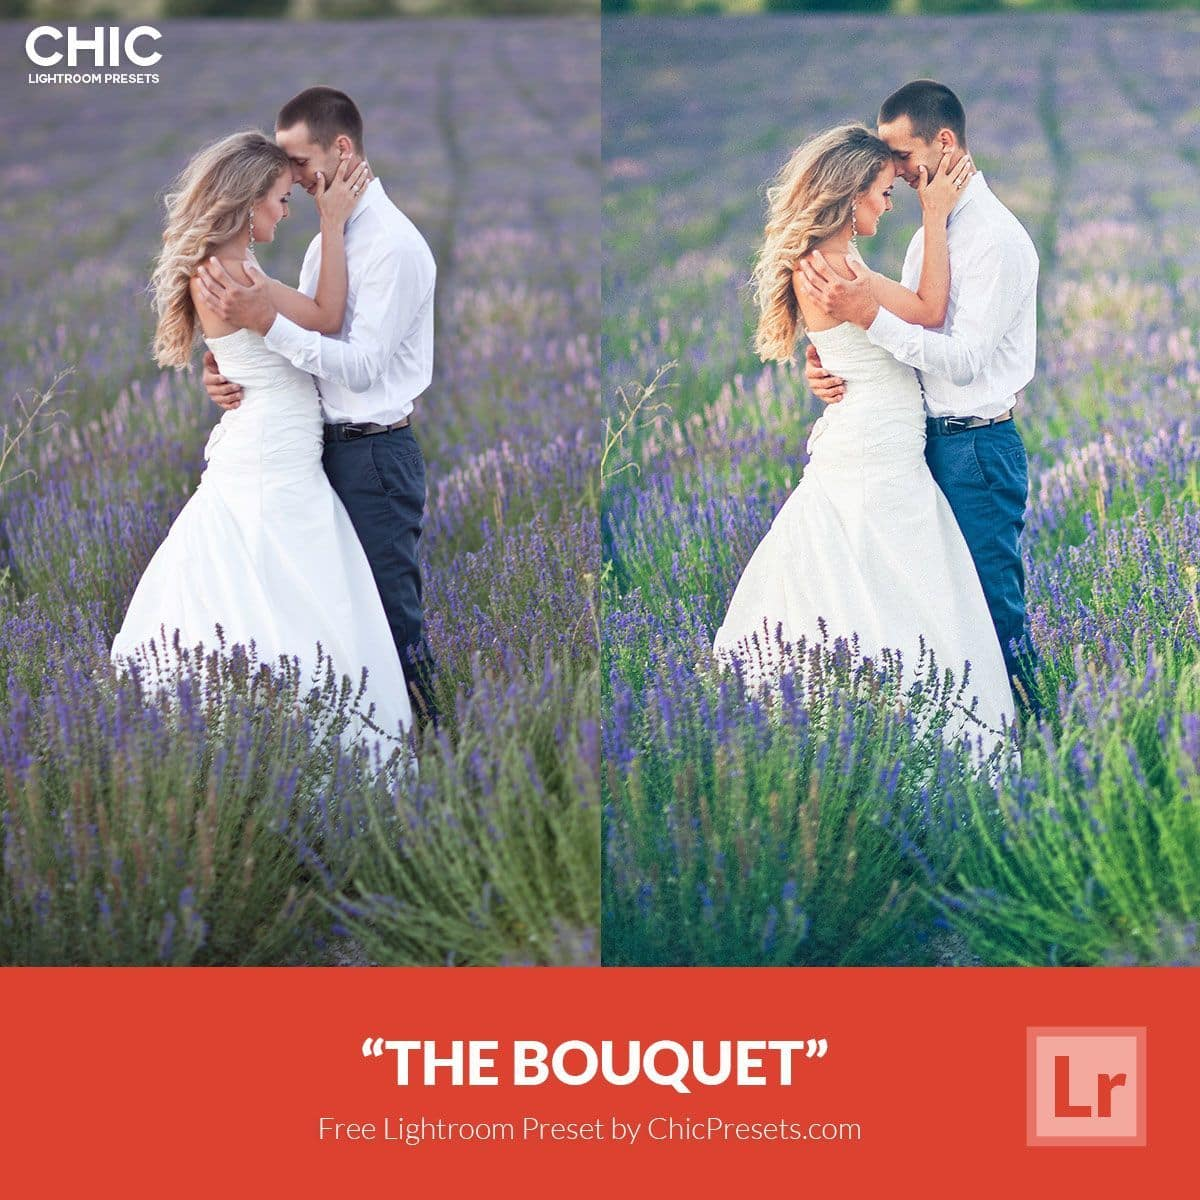 Free-Lightroom-Preset-The-Bouquet-ChicPresets.com